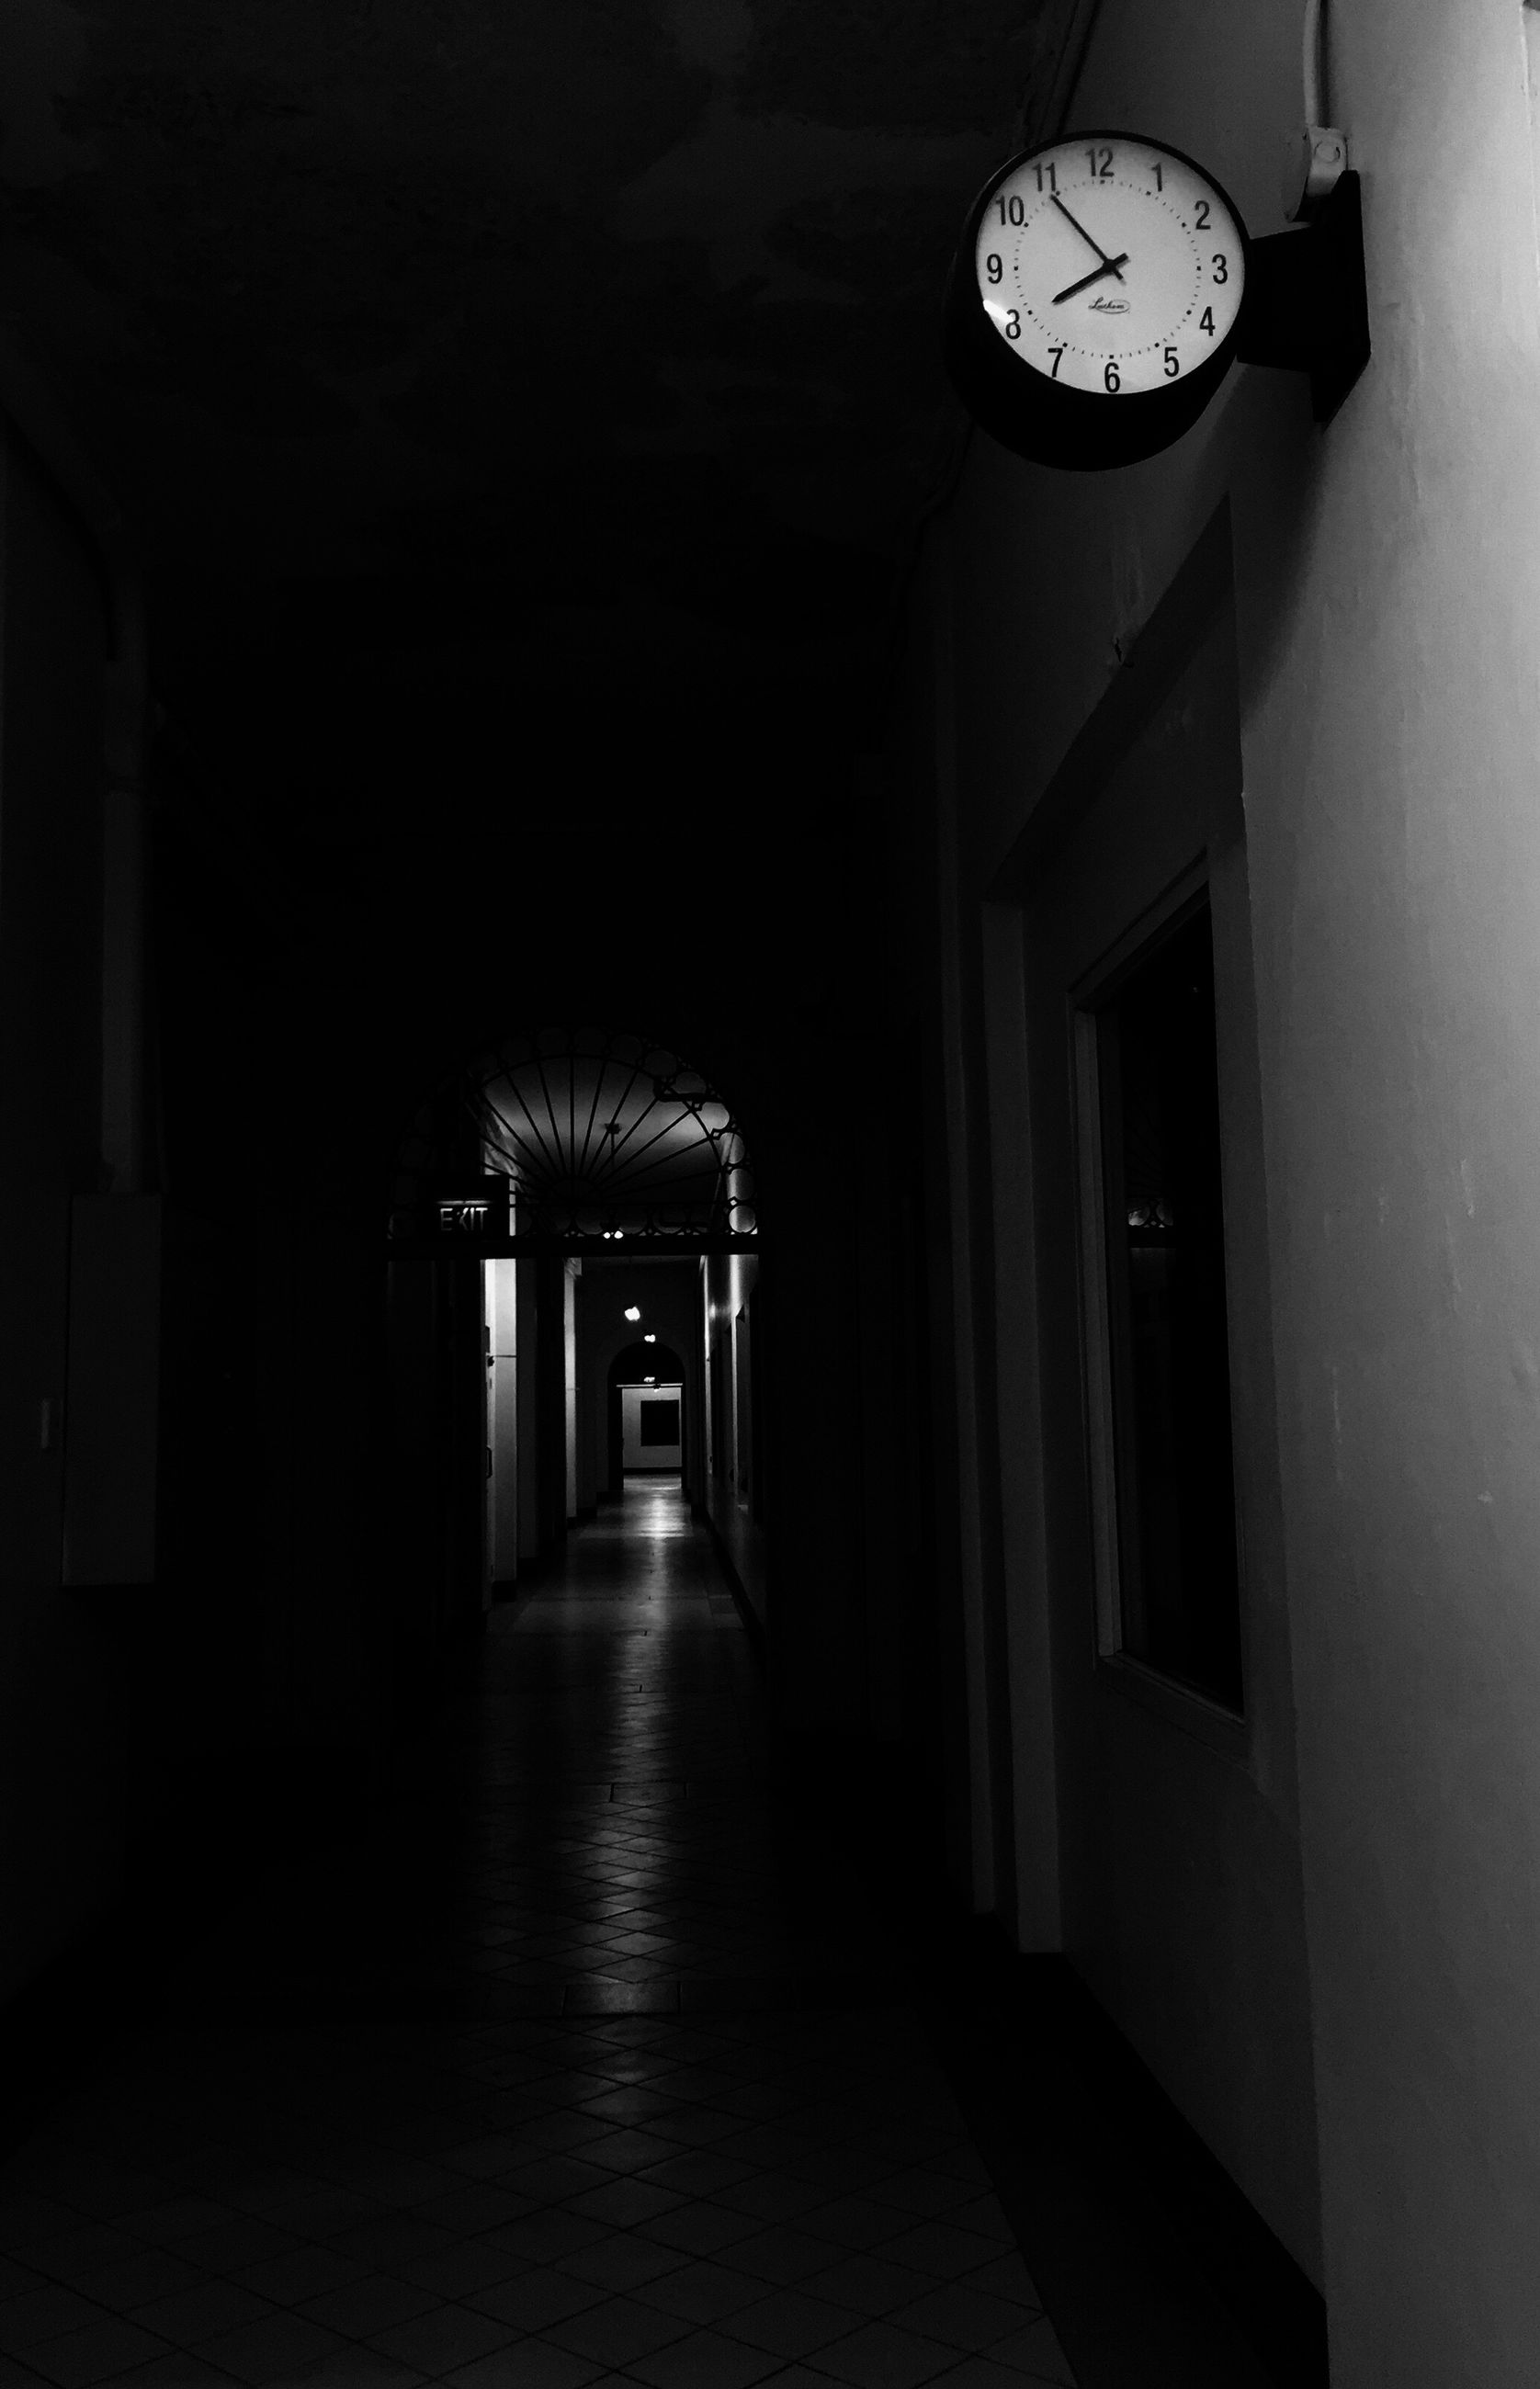 DLSU Clock Philippines Dark Evening Hallway Black And White